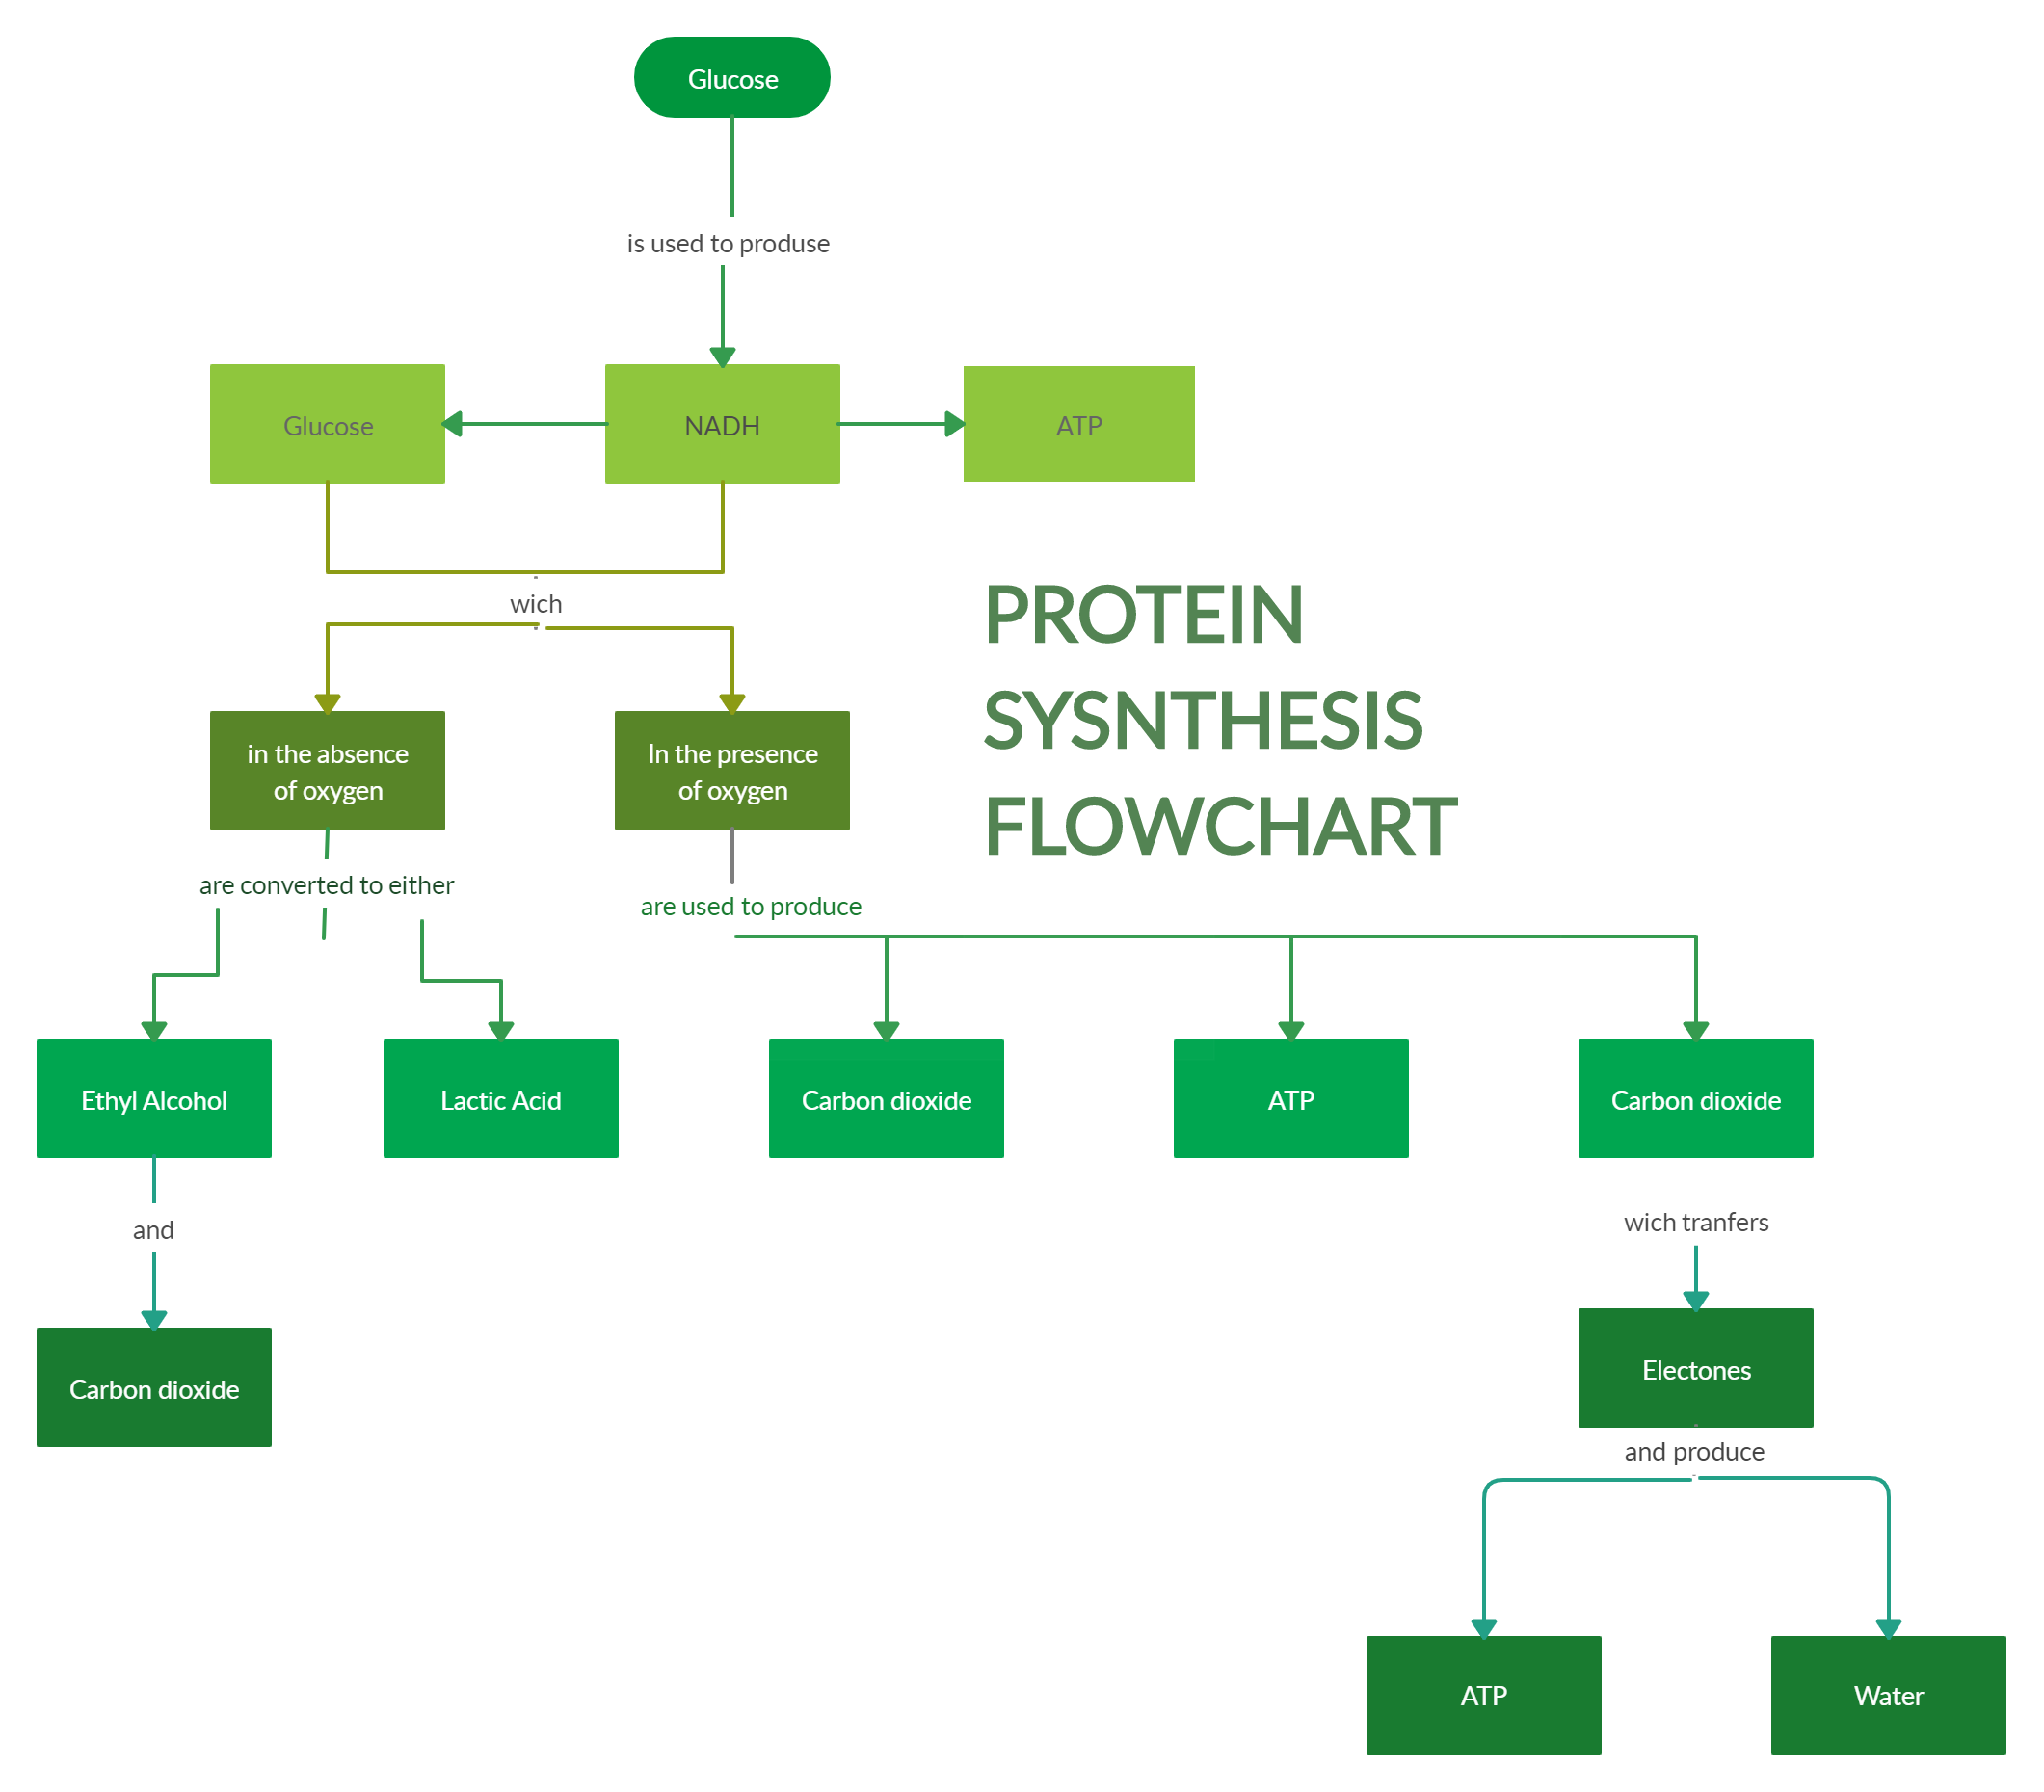 Protein Synthesis Flowchart Flow Chart Protein Synthesis Templates